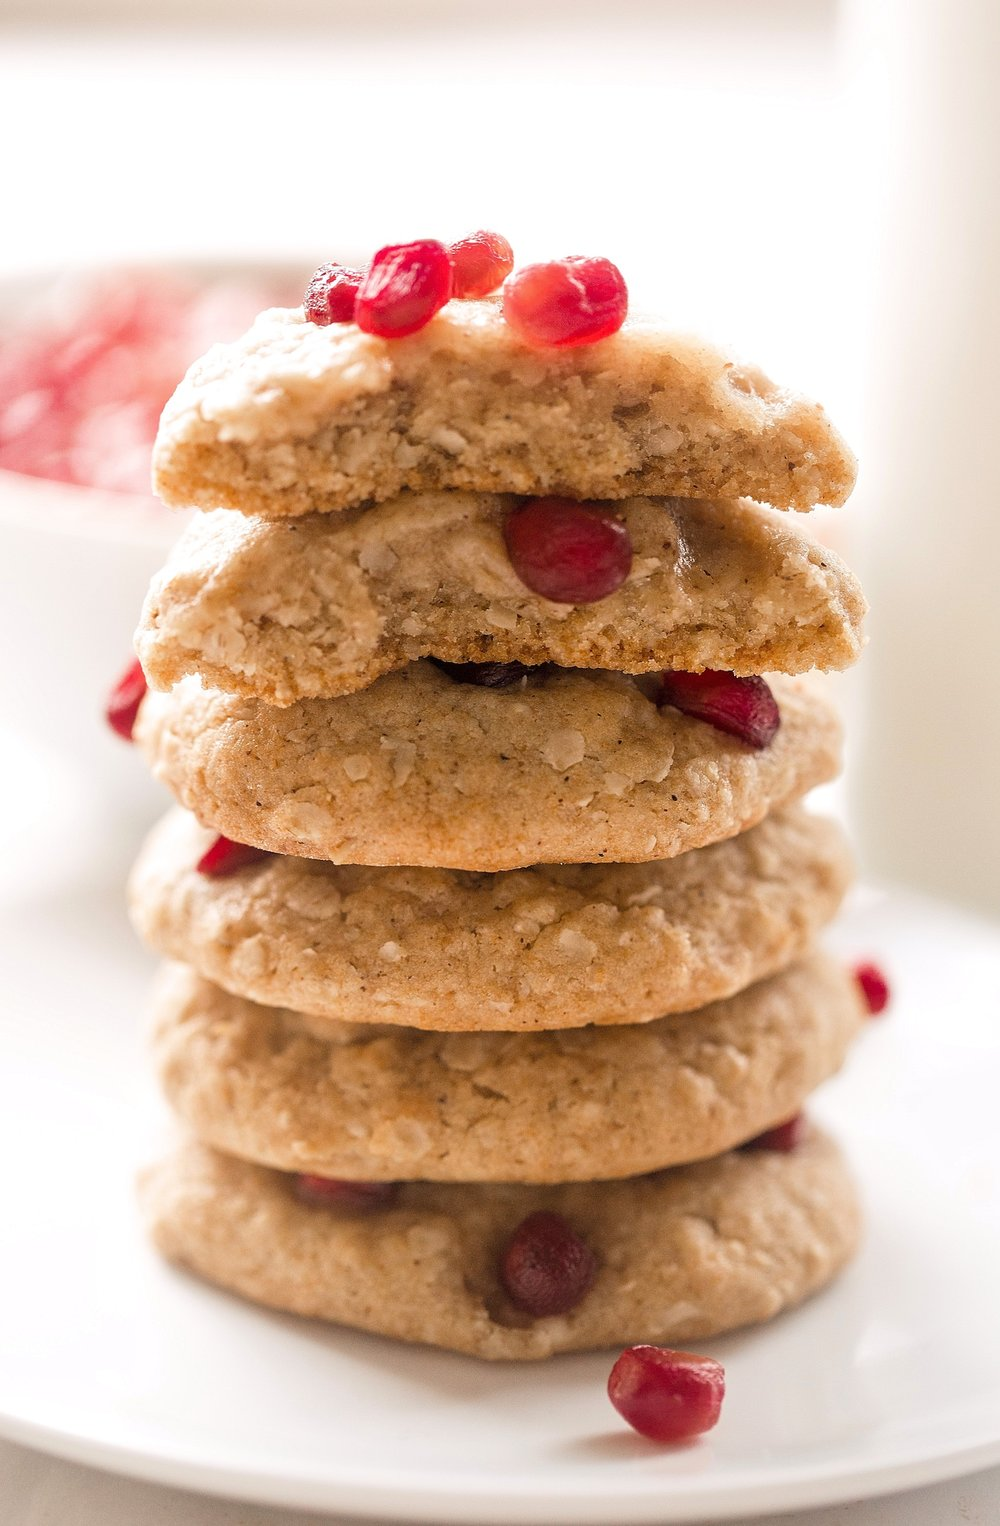 Honey Oatmeal Pomegranate Cookies: soft, gooey, dairy-free honey cookies filled with oats and topped with pomegranate seeds. Perfect for Rosh Hashanah! | TrufflesandTrends.com